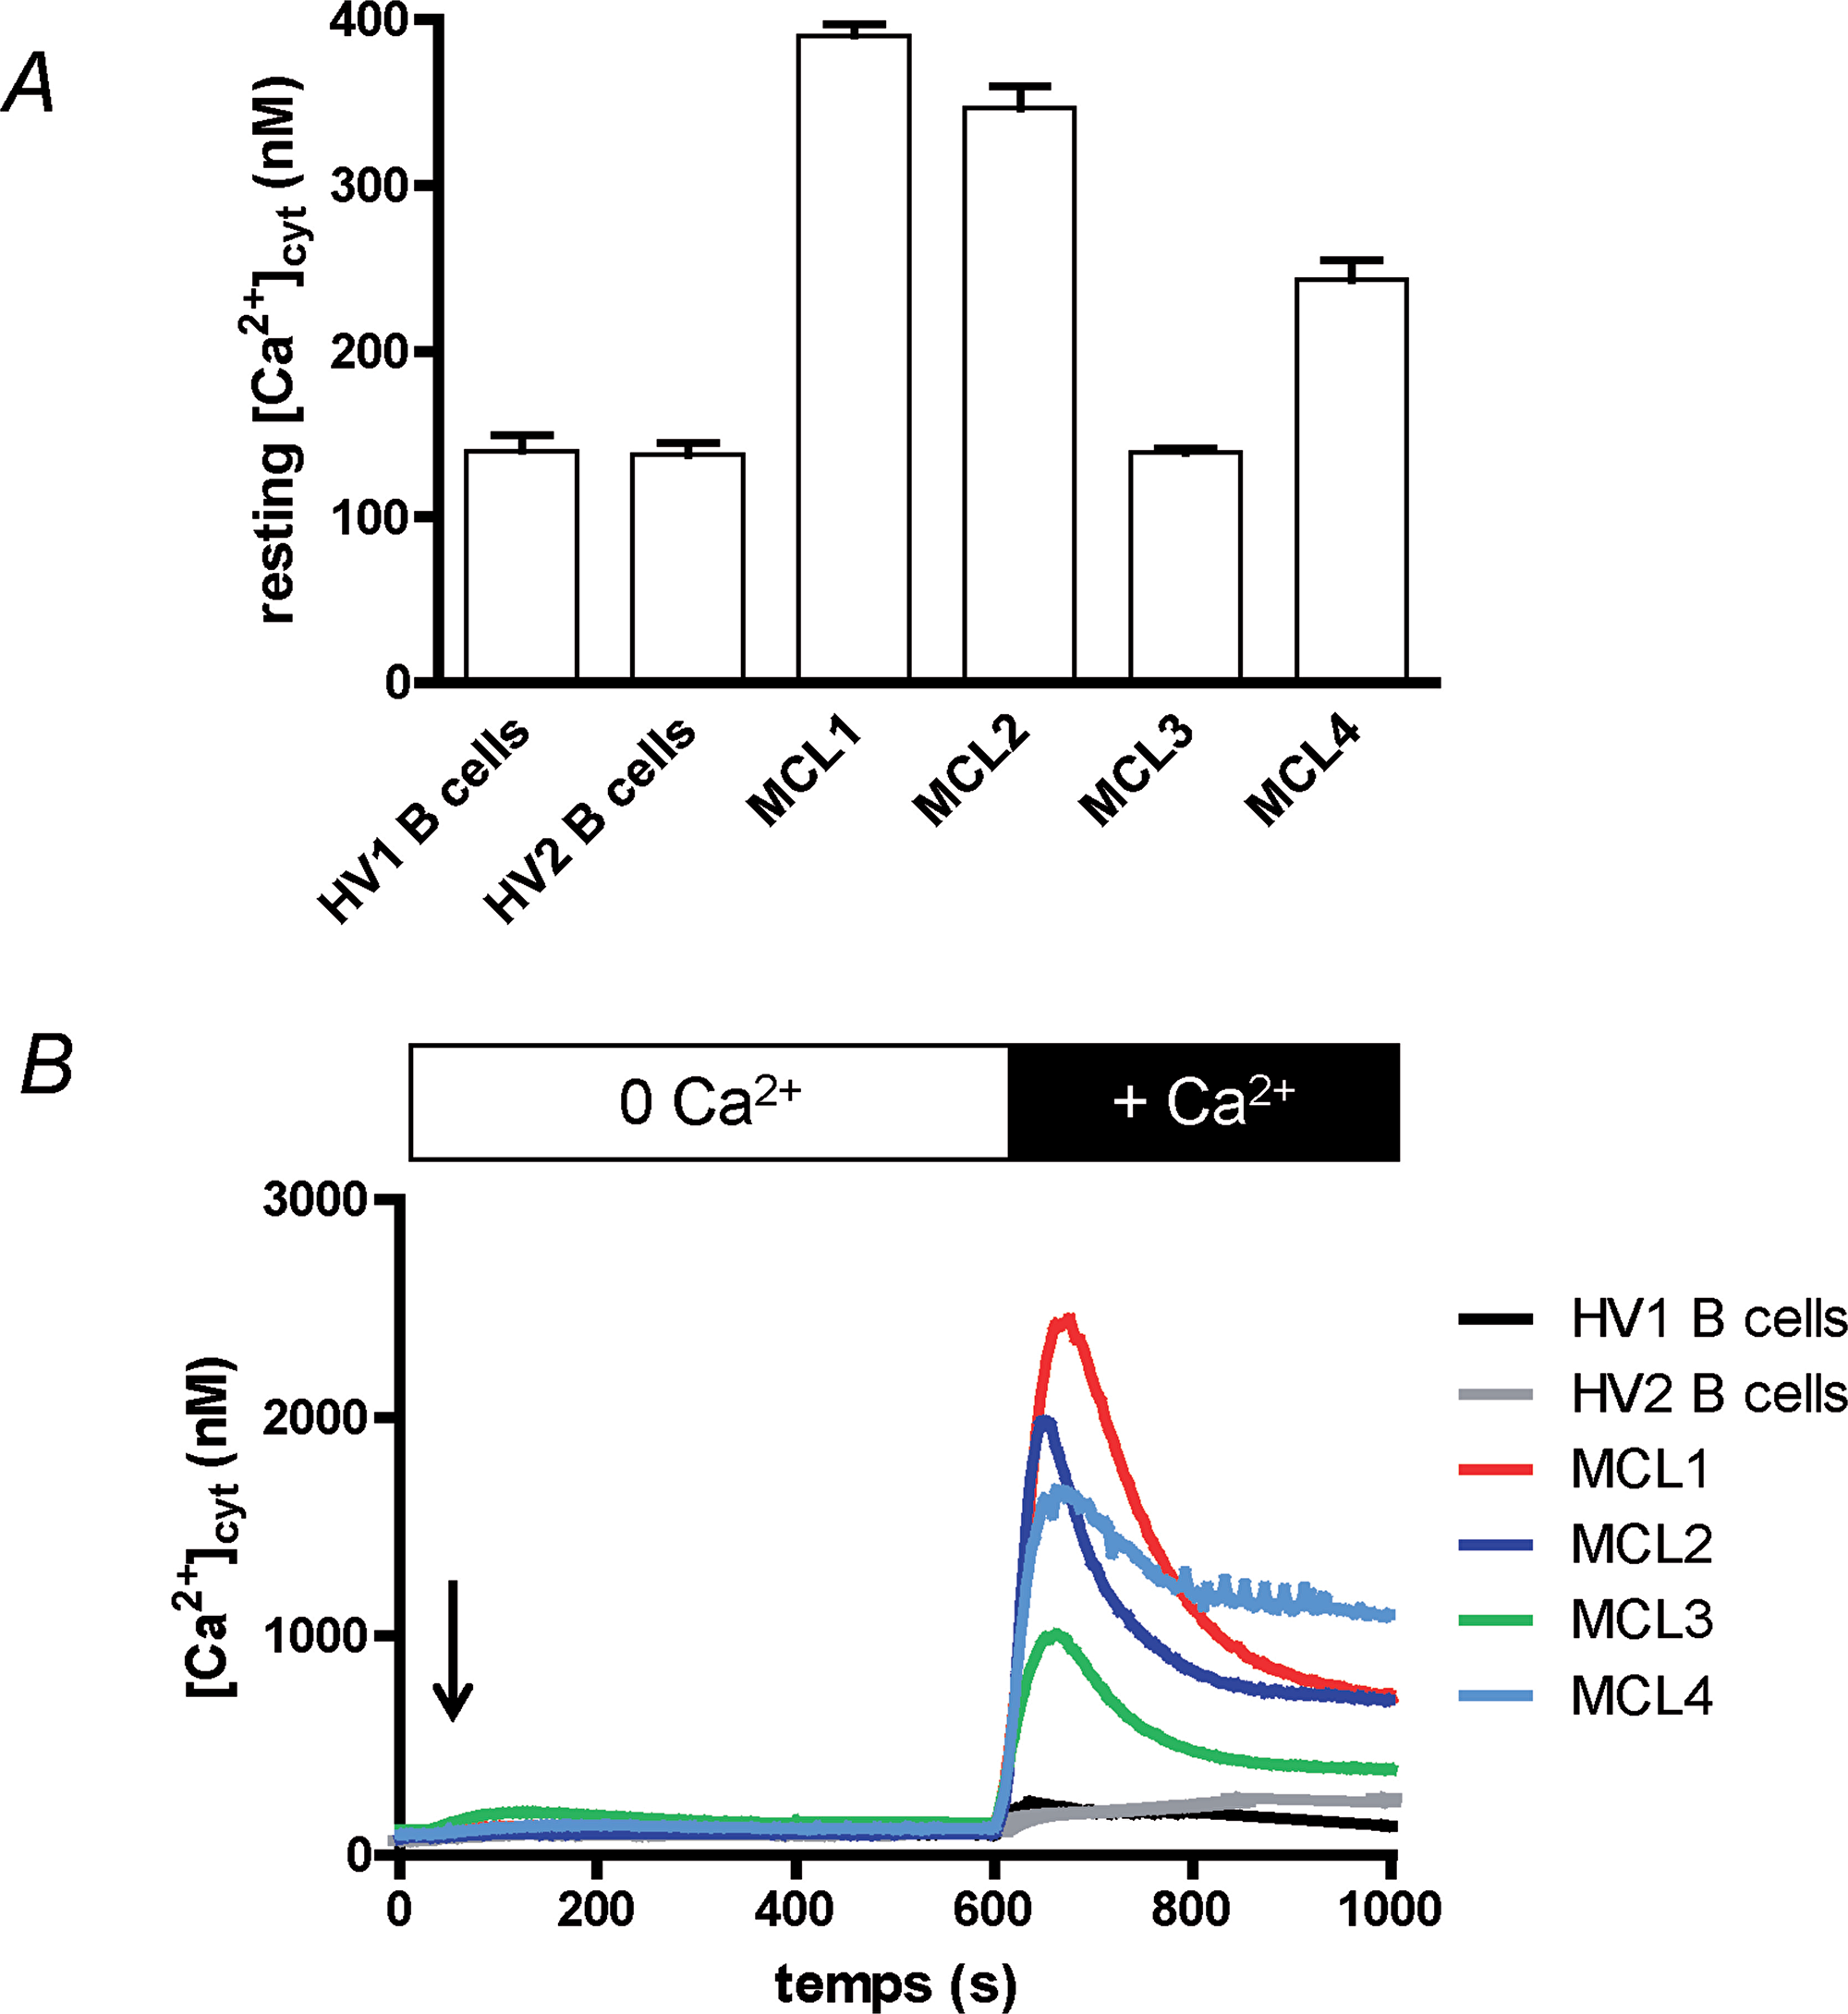 Ca2+ homeostasis of MCL lymphoblasts is different from circulating B cells'.